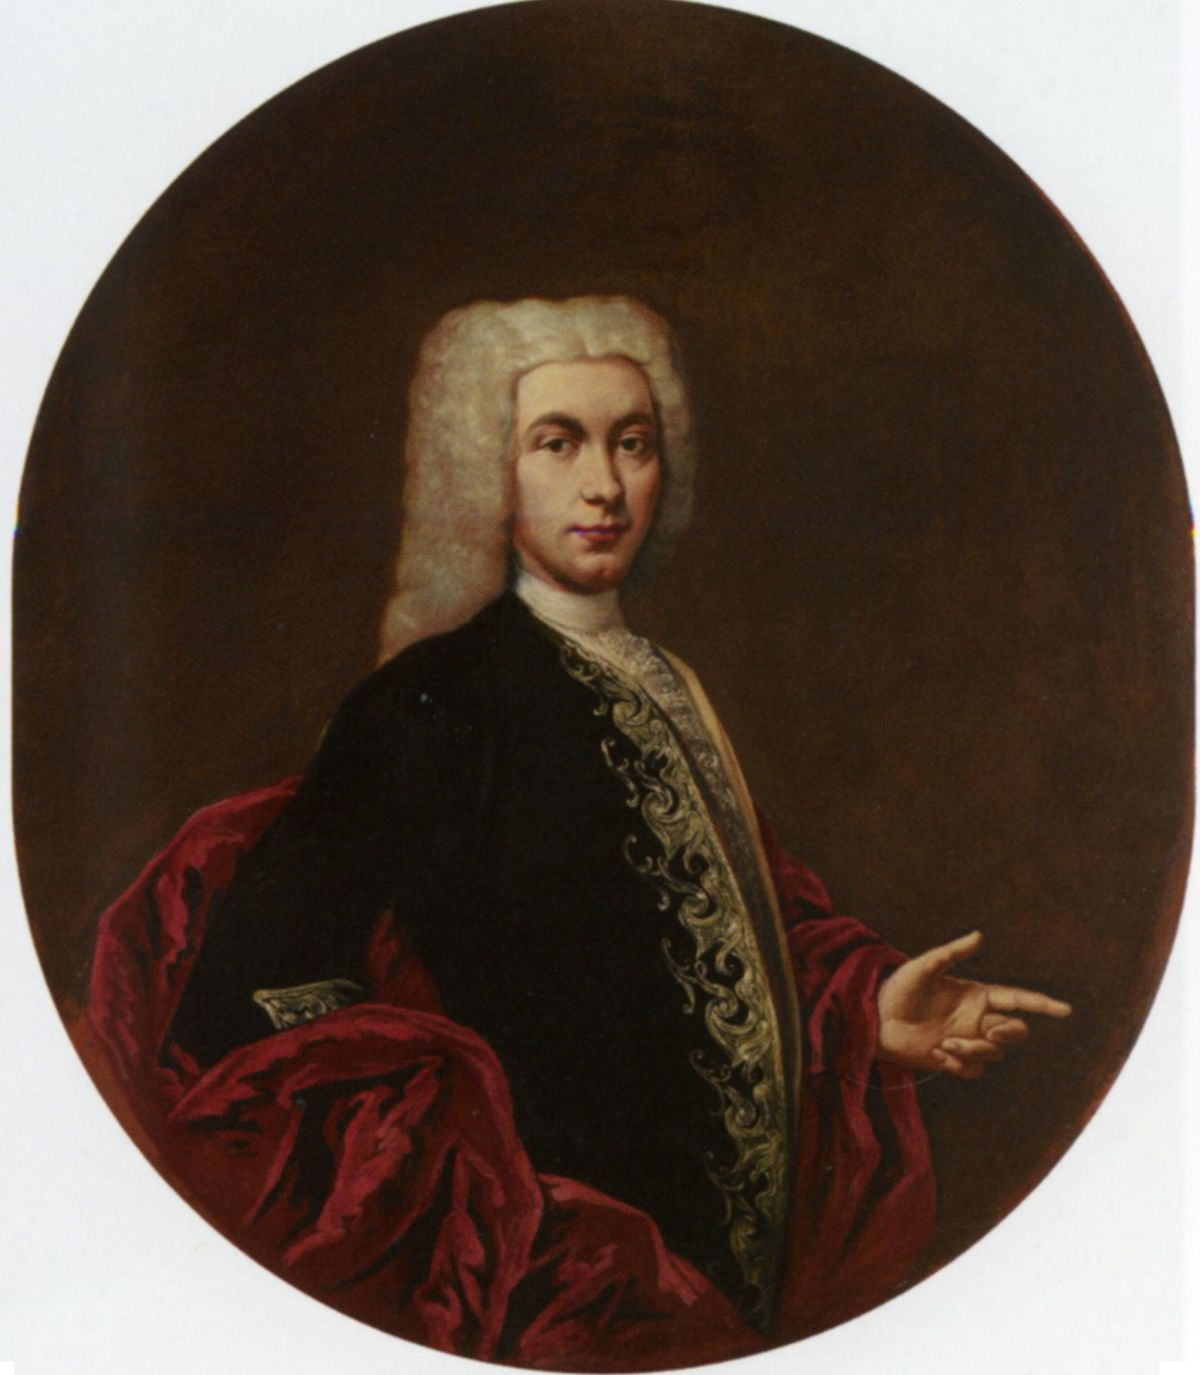 Portrait of a Gentleman Half Length Wearing an Embroidered Doublet by Giacomo Ceruti